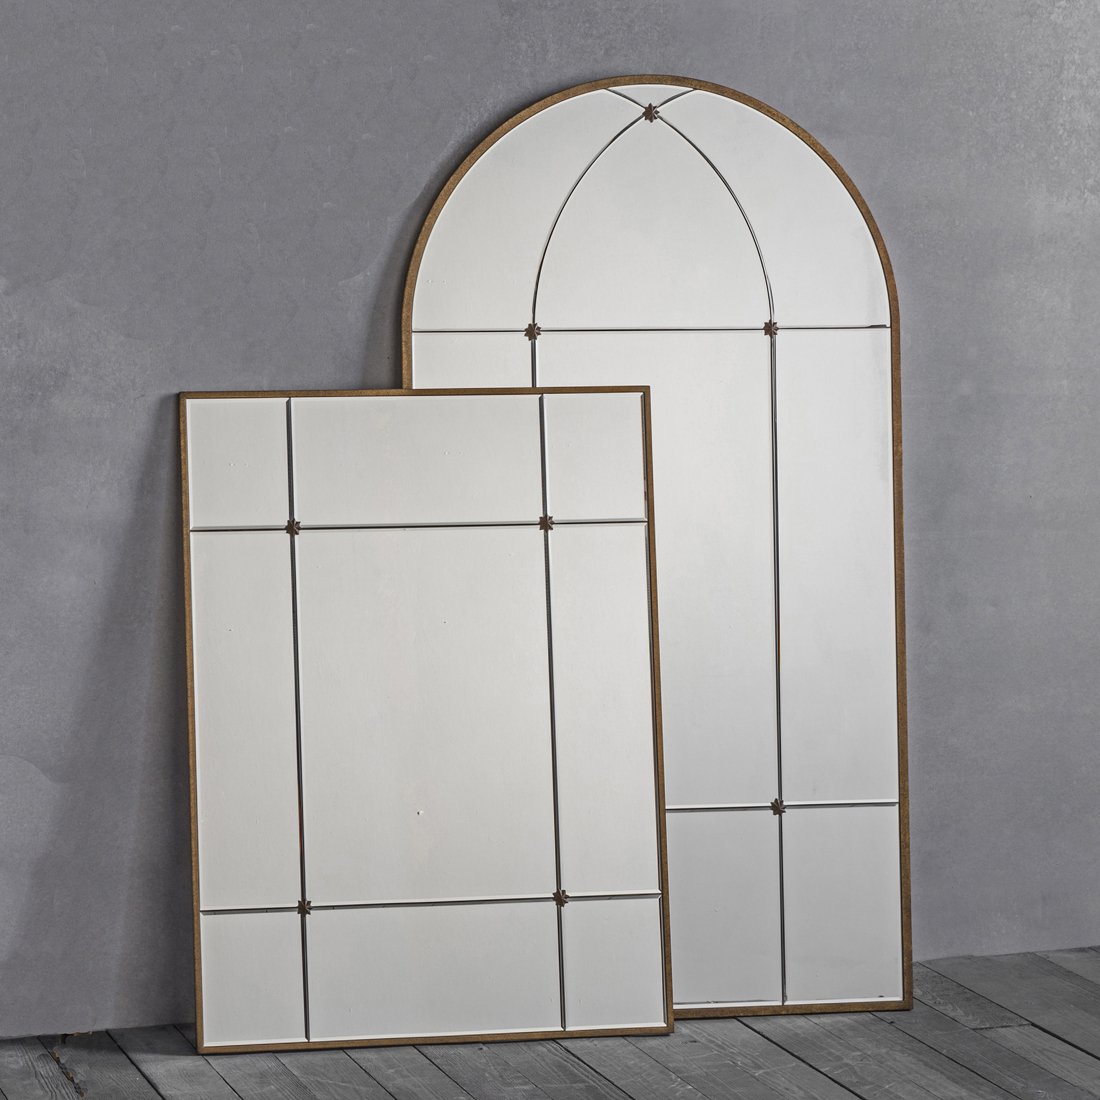 Metal Arch Window Wall Mirrors Inside Most Current Gold Window Wall Mirror – Arch Or Rectangle (Gallery 7 of 20)